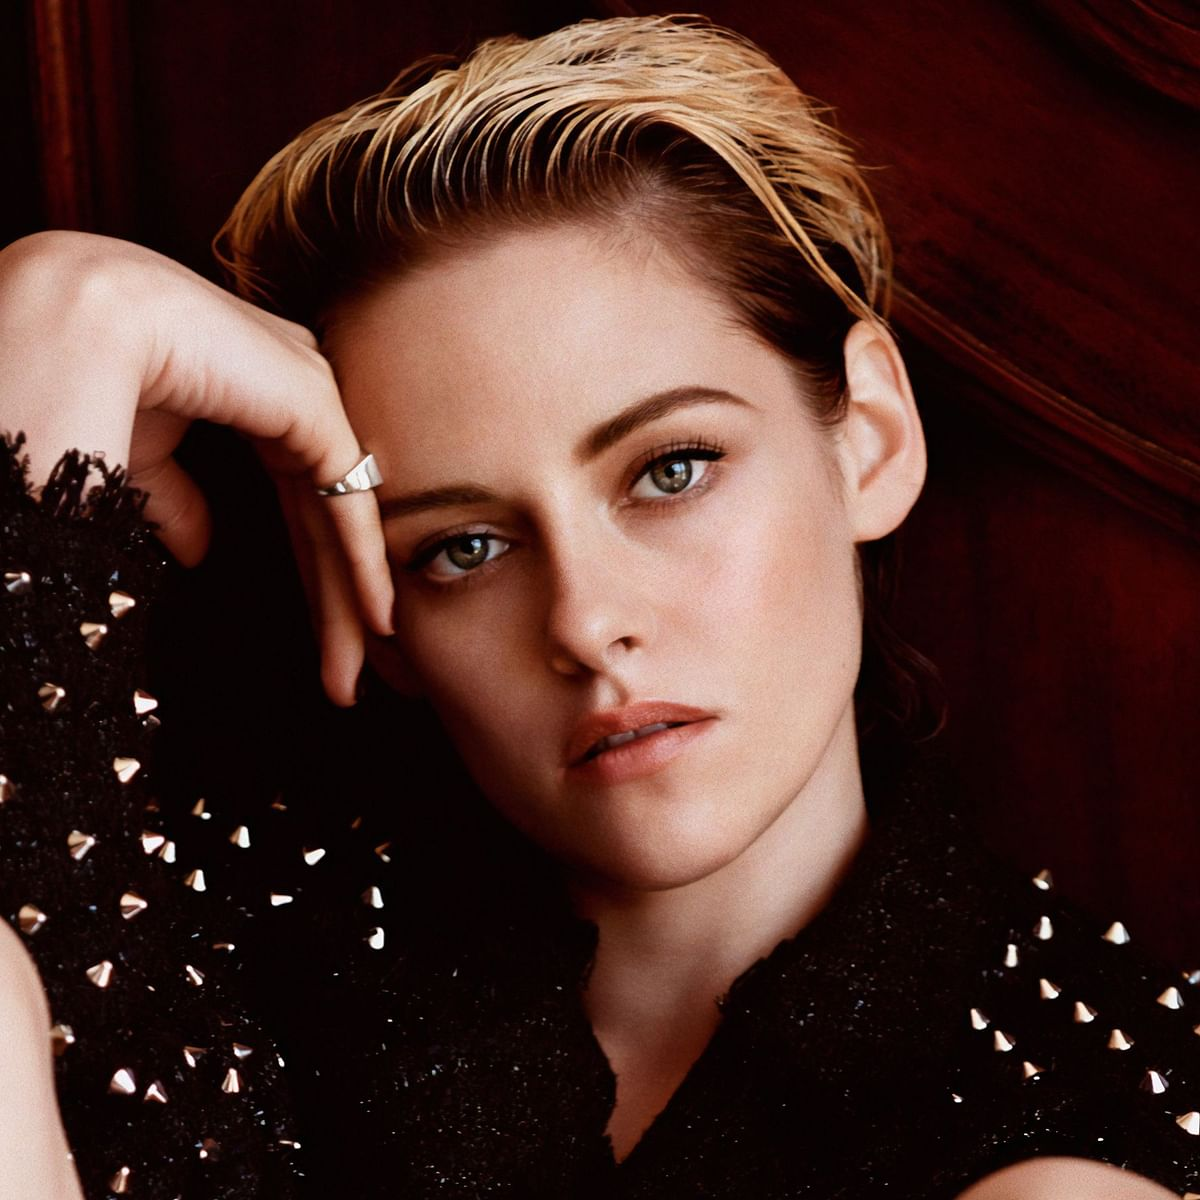 Kristen Stewart in talks to play Princess Diana in an upcoming biopic titled 'Spencer'